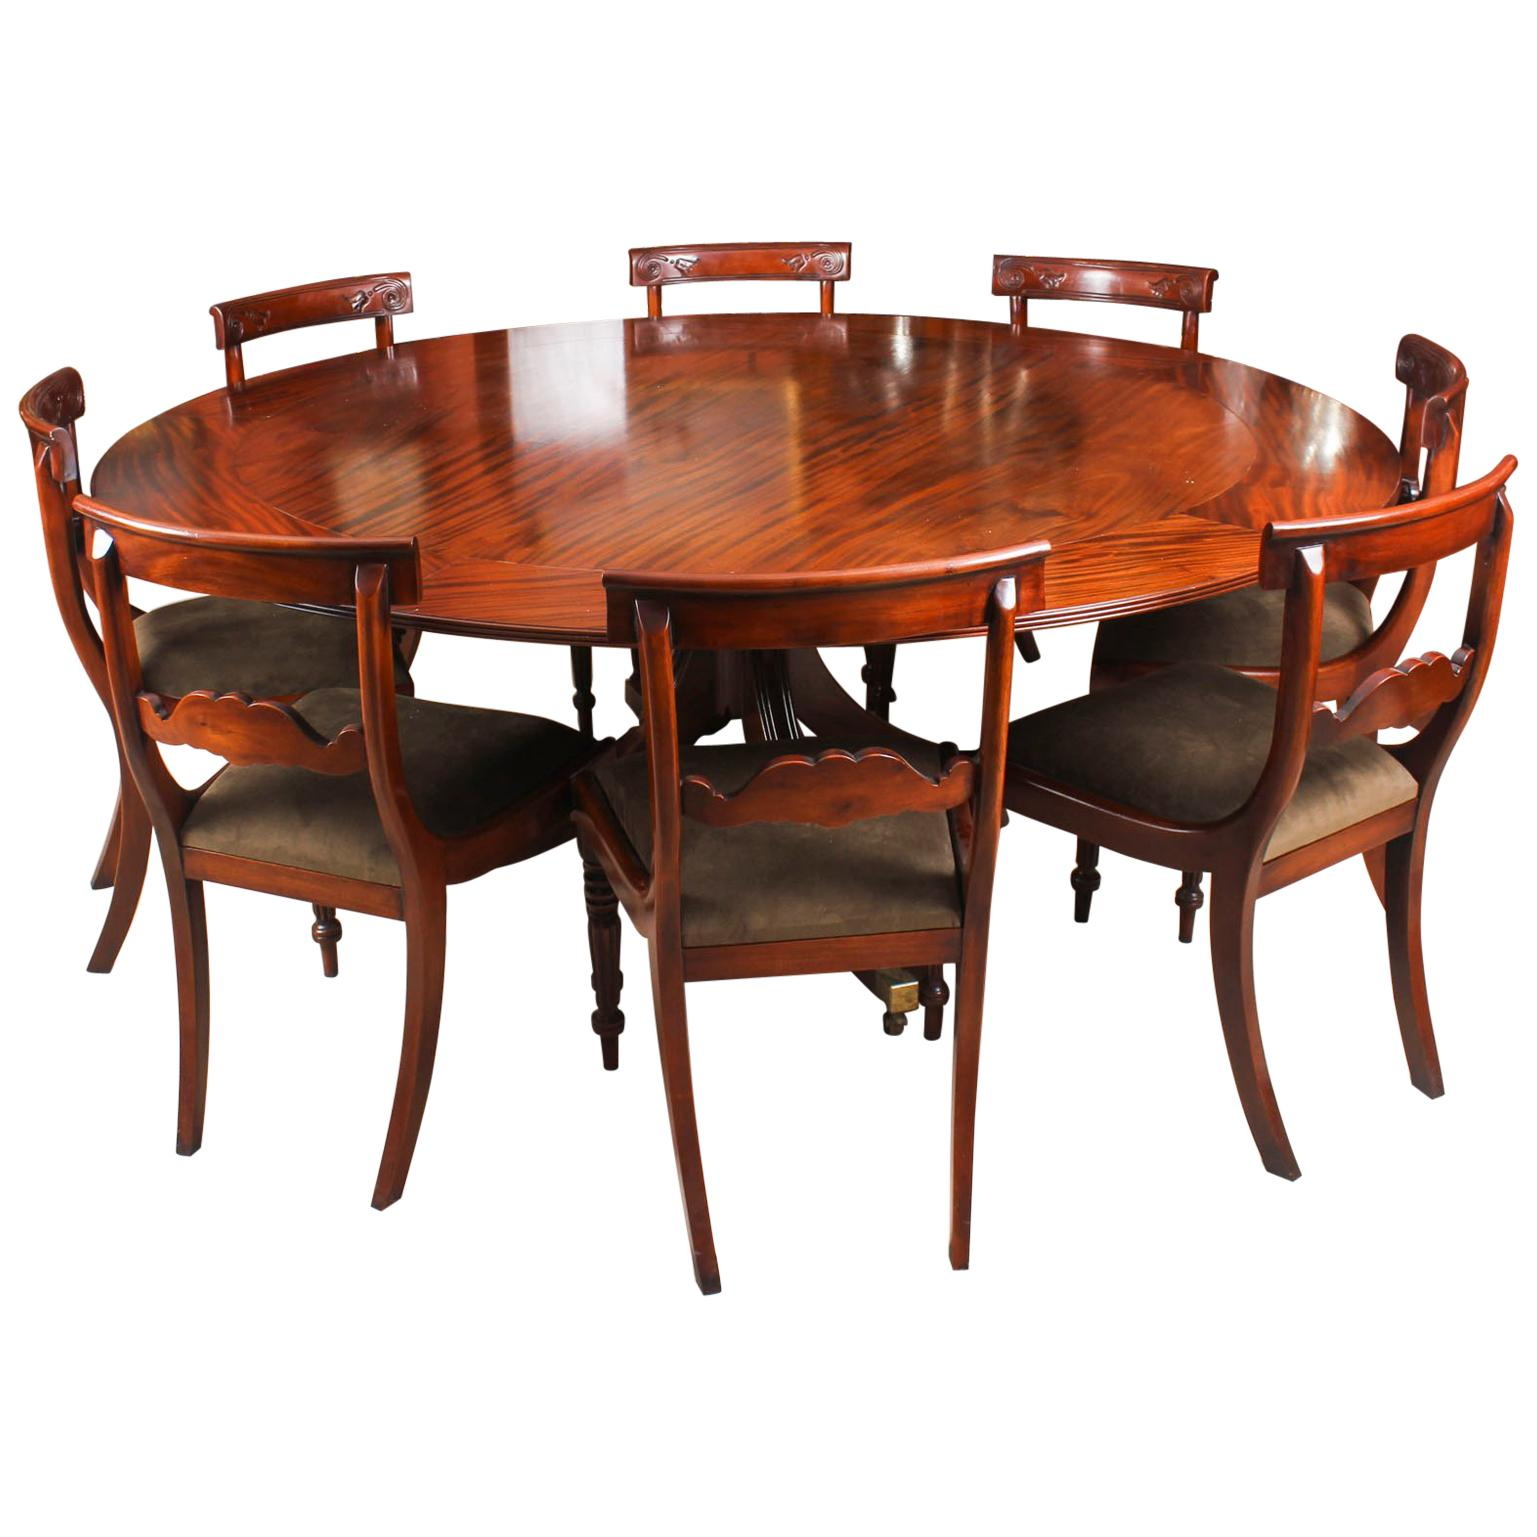 Dining Table 8 Chairs Vintage Mahogany Jupe Dining Table Leaf Cabinet And 8 Chairs